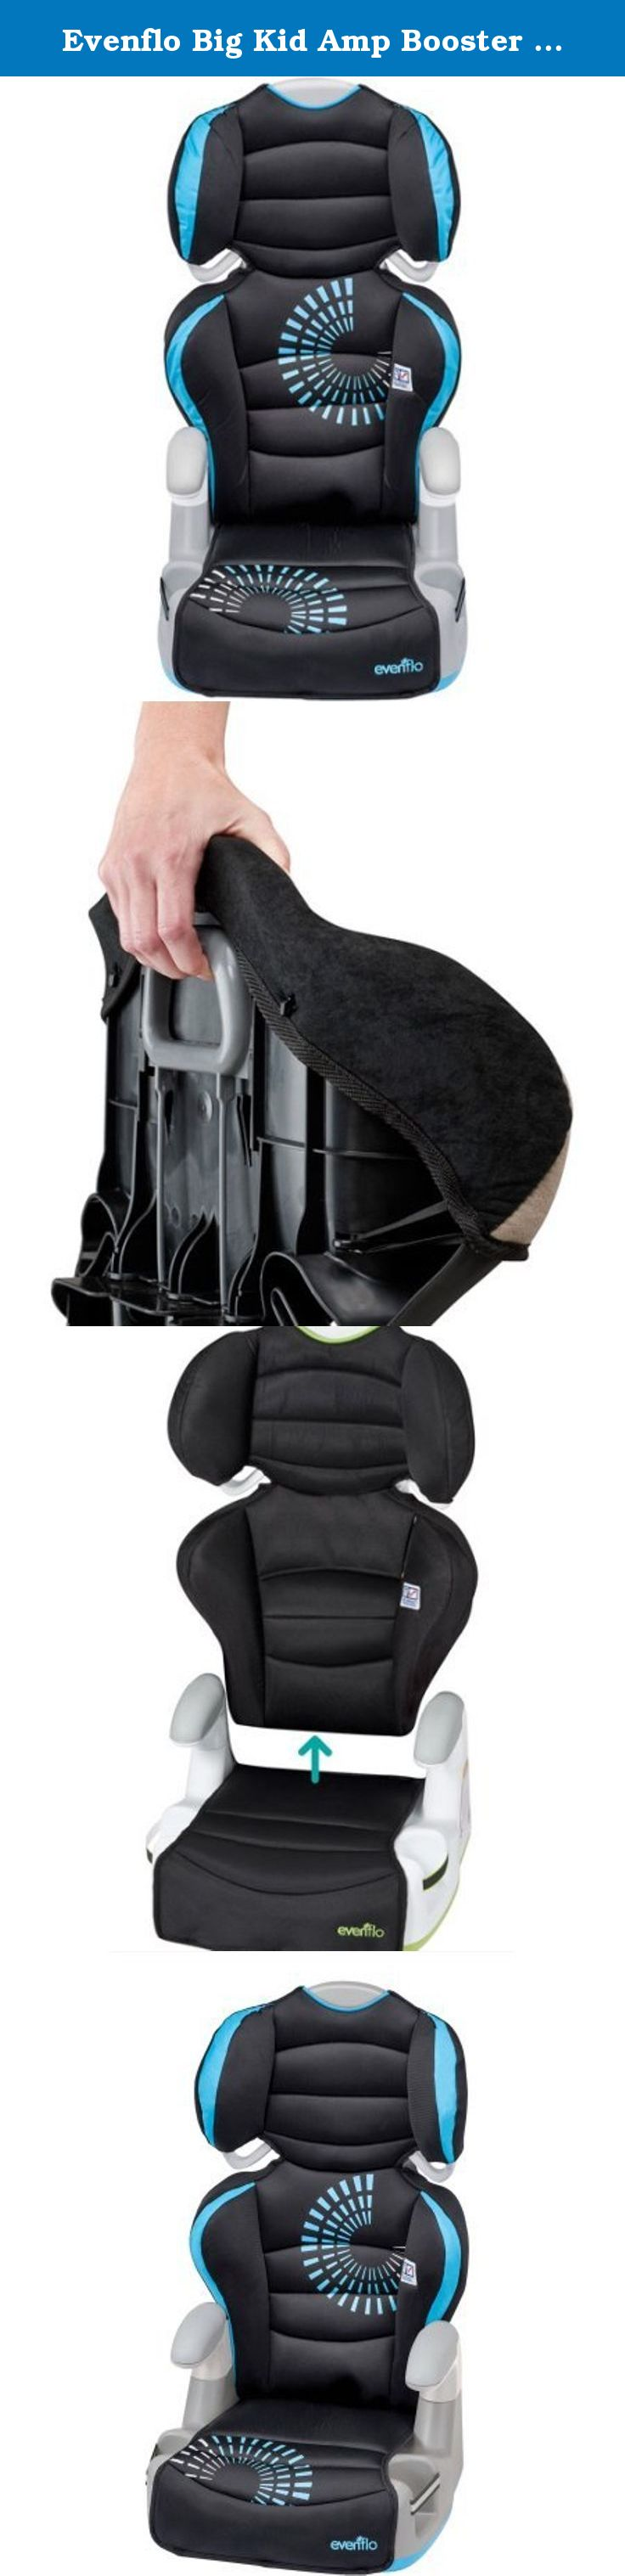 Evenflo Big Kid Amp Booster Car Seat